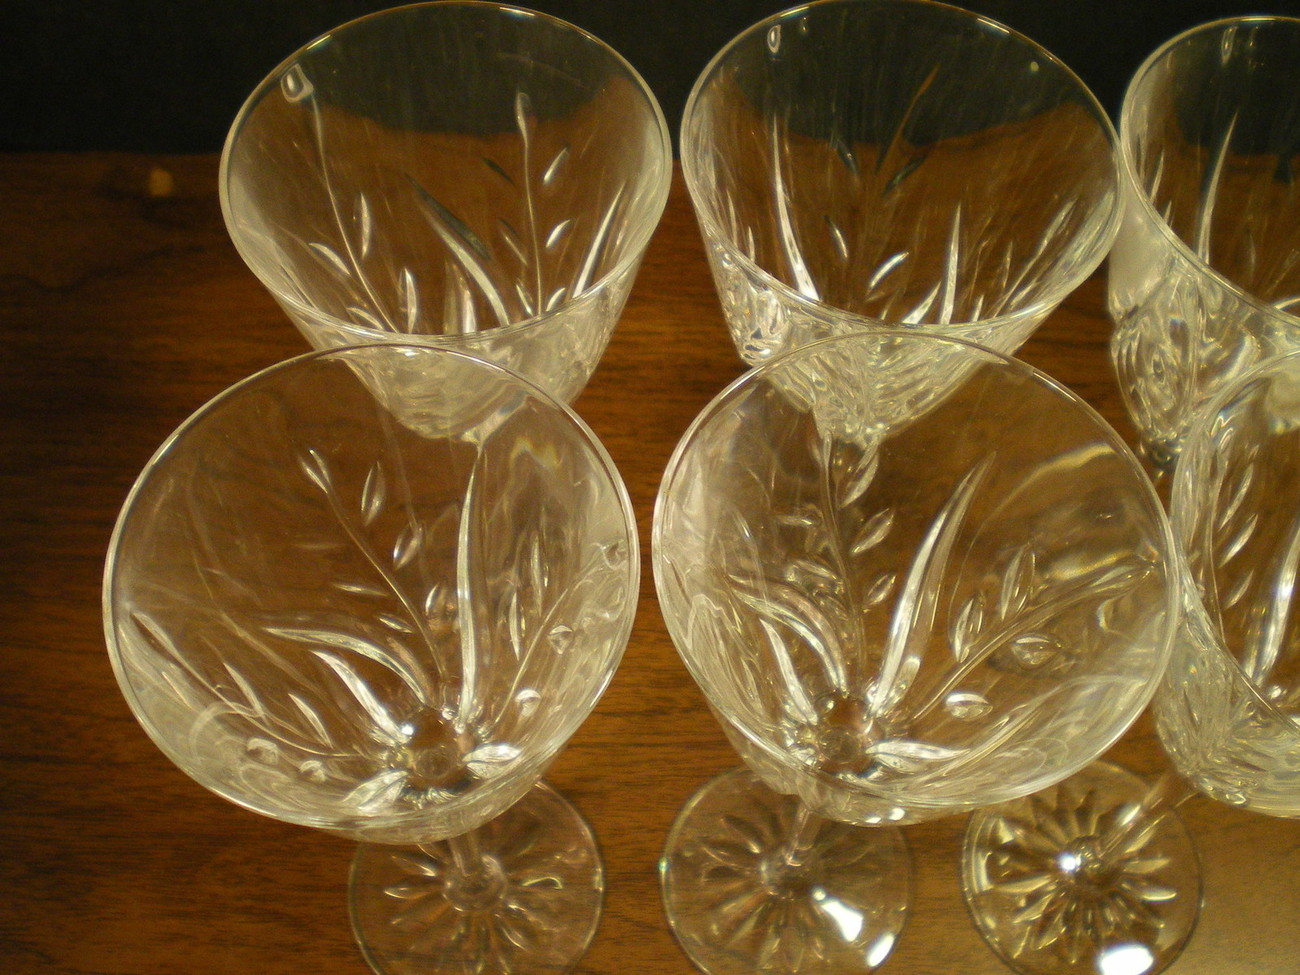 SET OF 6 CRISTAL d'ARQUES CASSANDRA WINE STEMS~~~nice set